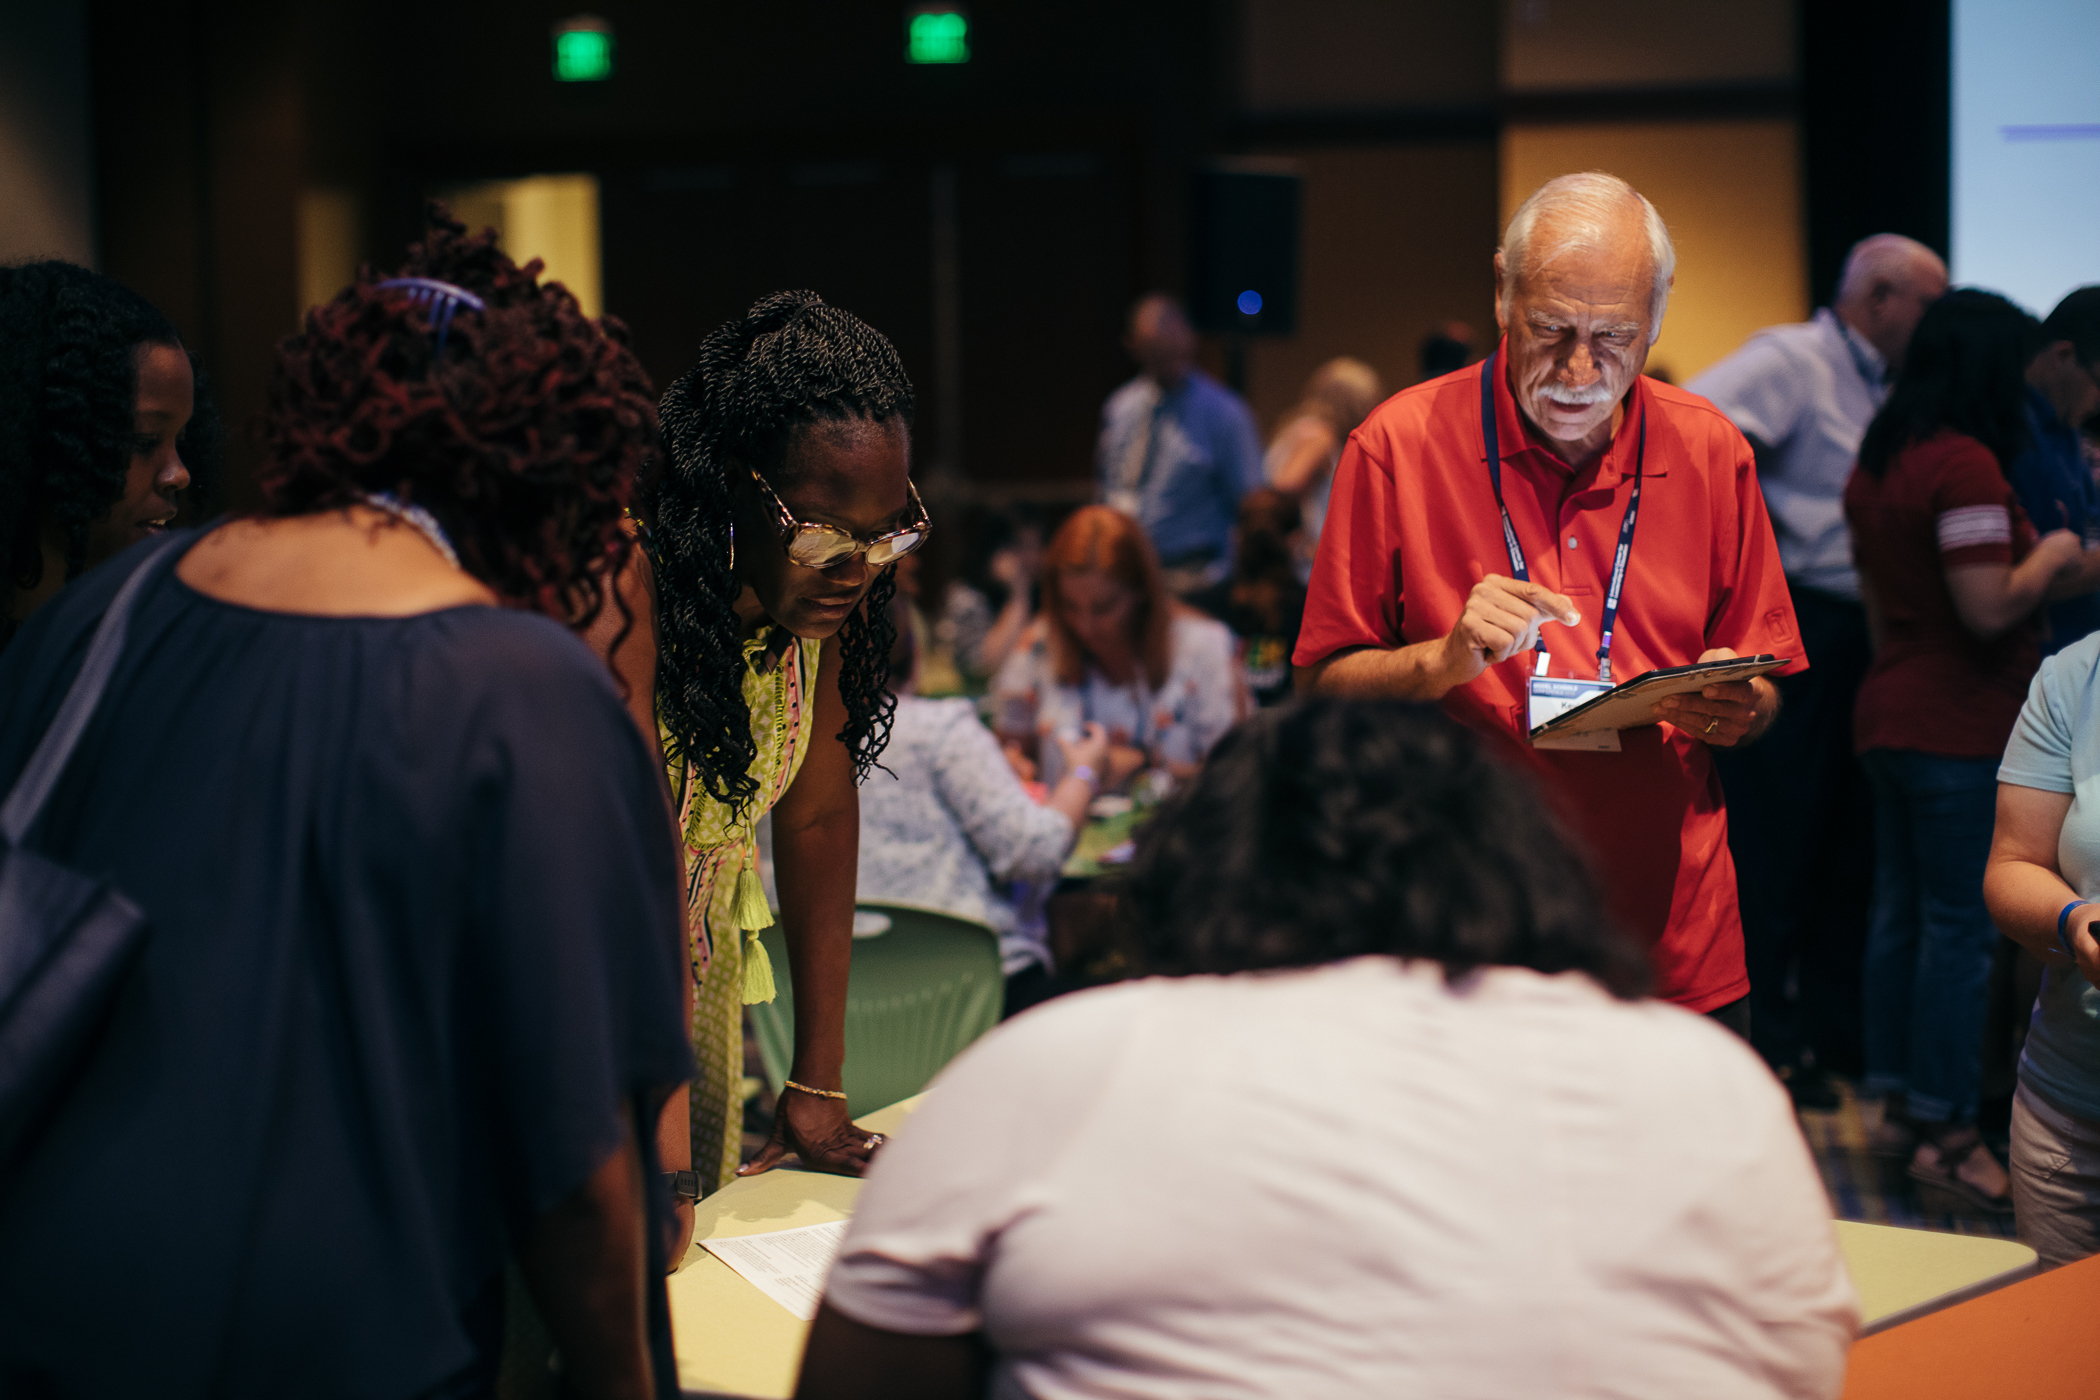 live event commercial photography brand storytelling for education florida conference photographer ©2018abigailbobophotography-46.jpg